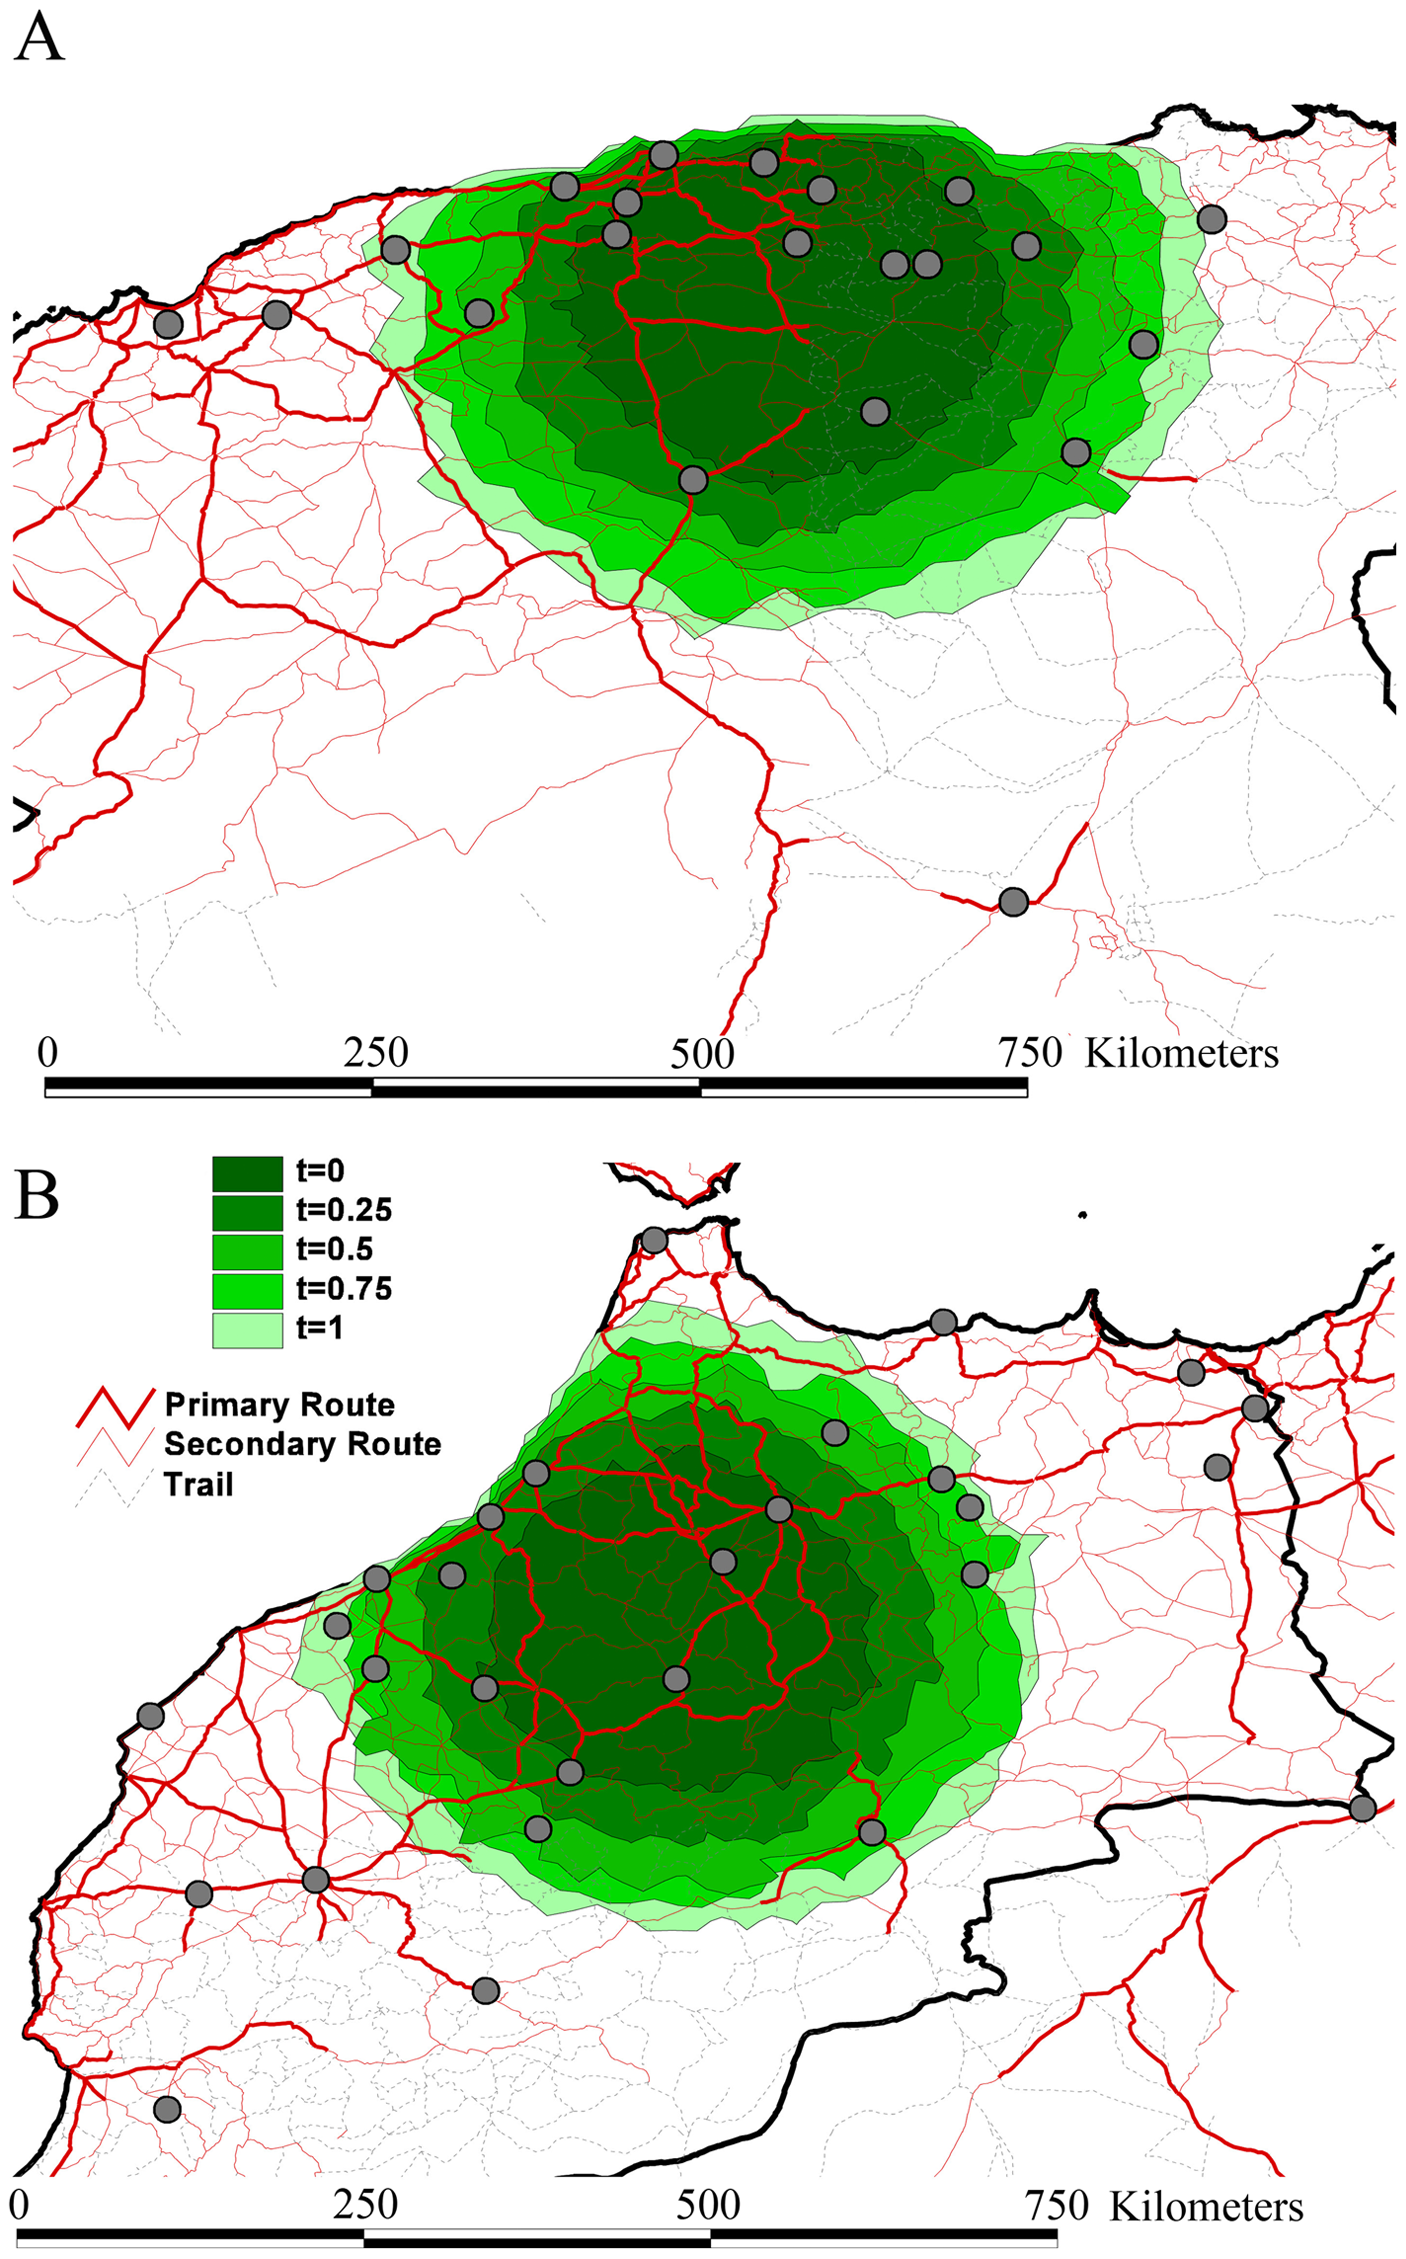 Spatial simulation based on the inferred evolutionary histories and epidemiological parameters of rabies spread in Algeria (A) and Morocco (B).